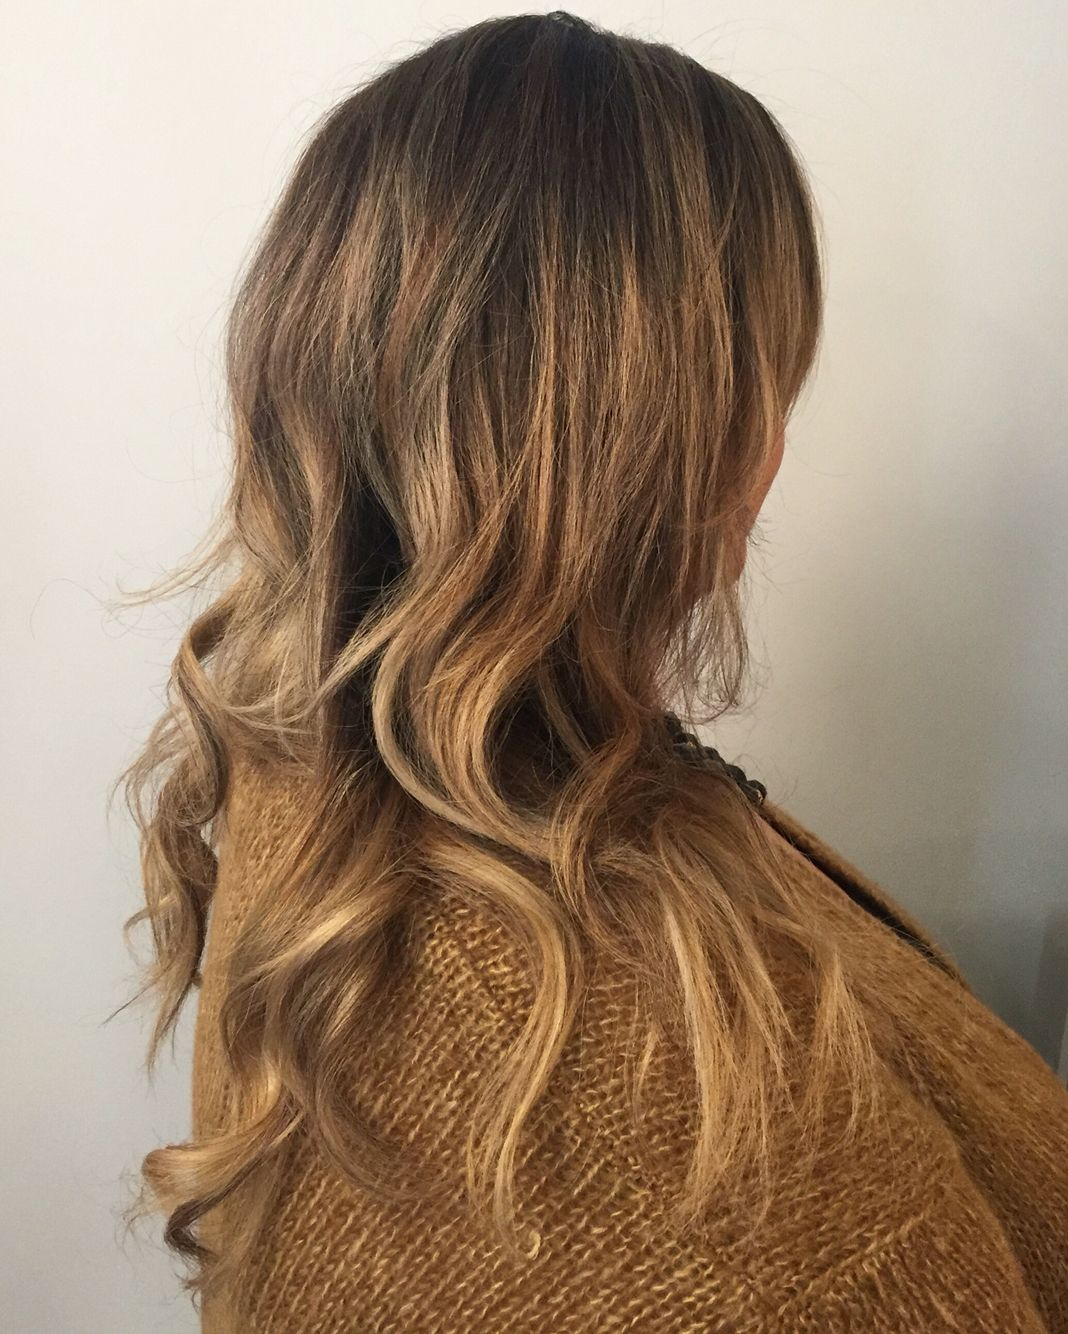 By Hollylikeshair In Portland Or At Blueprint Modern Hair Balayage Blonde Highlights Bronde Babylights Hair Modern Hairstyles Long Hair Styles Balayage